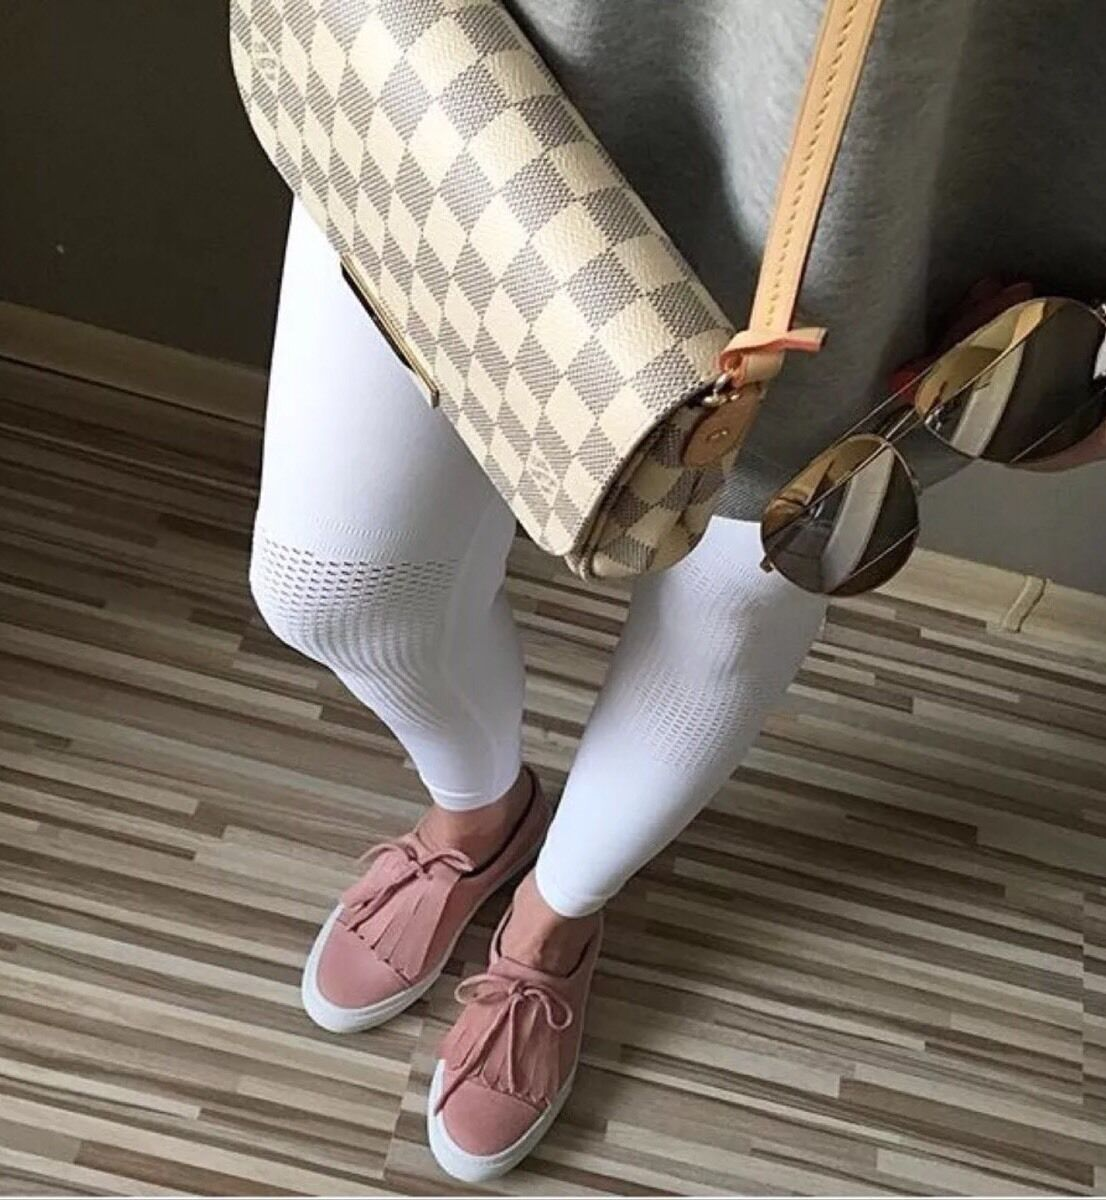 Pink Zara Fringed Leder Plimsolls BNWT 3 Flats Schuhes New BNWT Plimsolls Sold Out Trainers 908d10